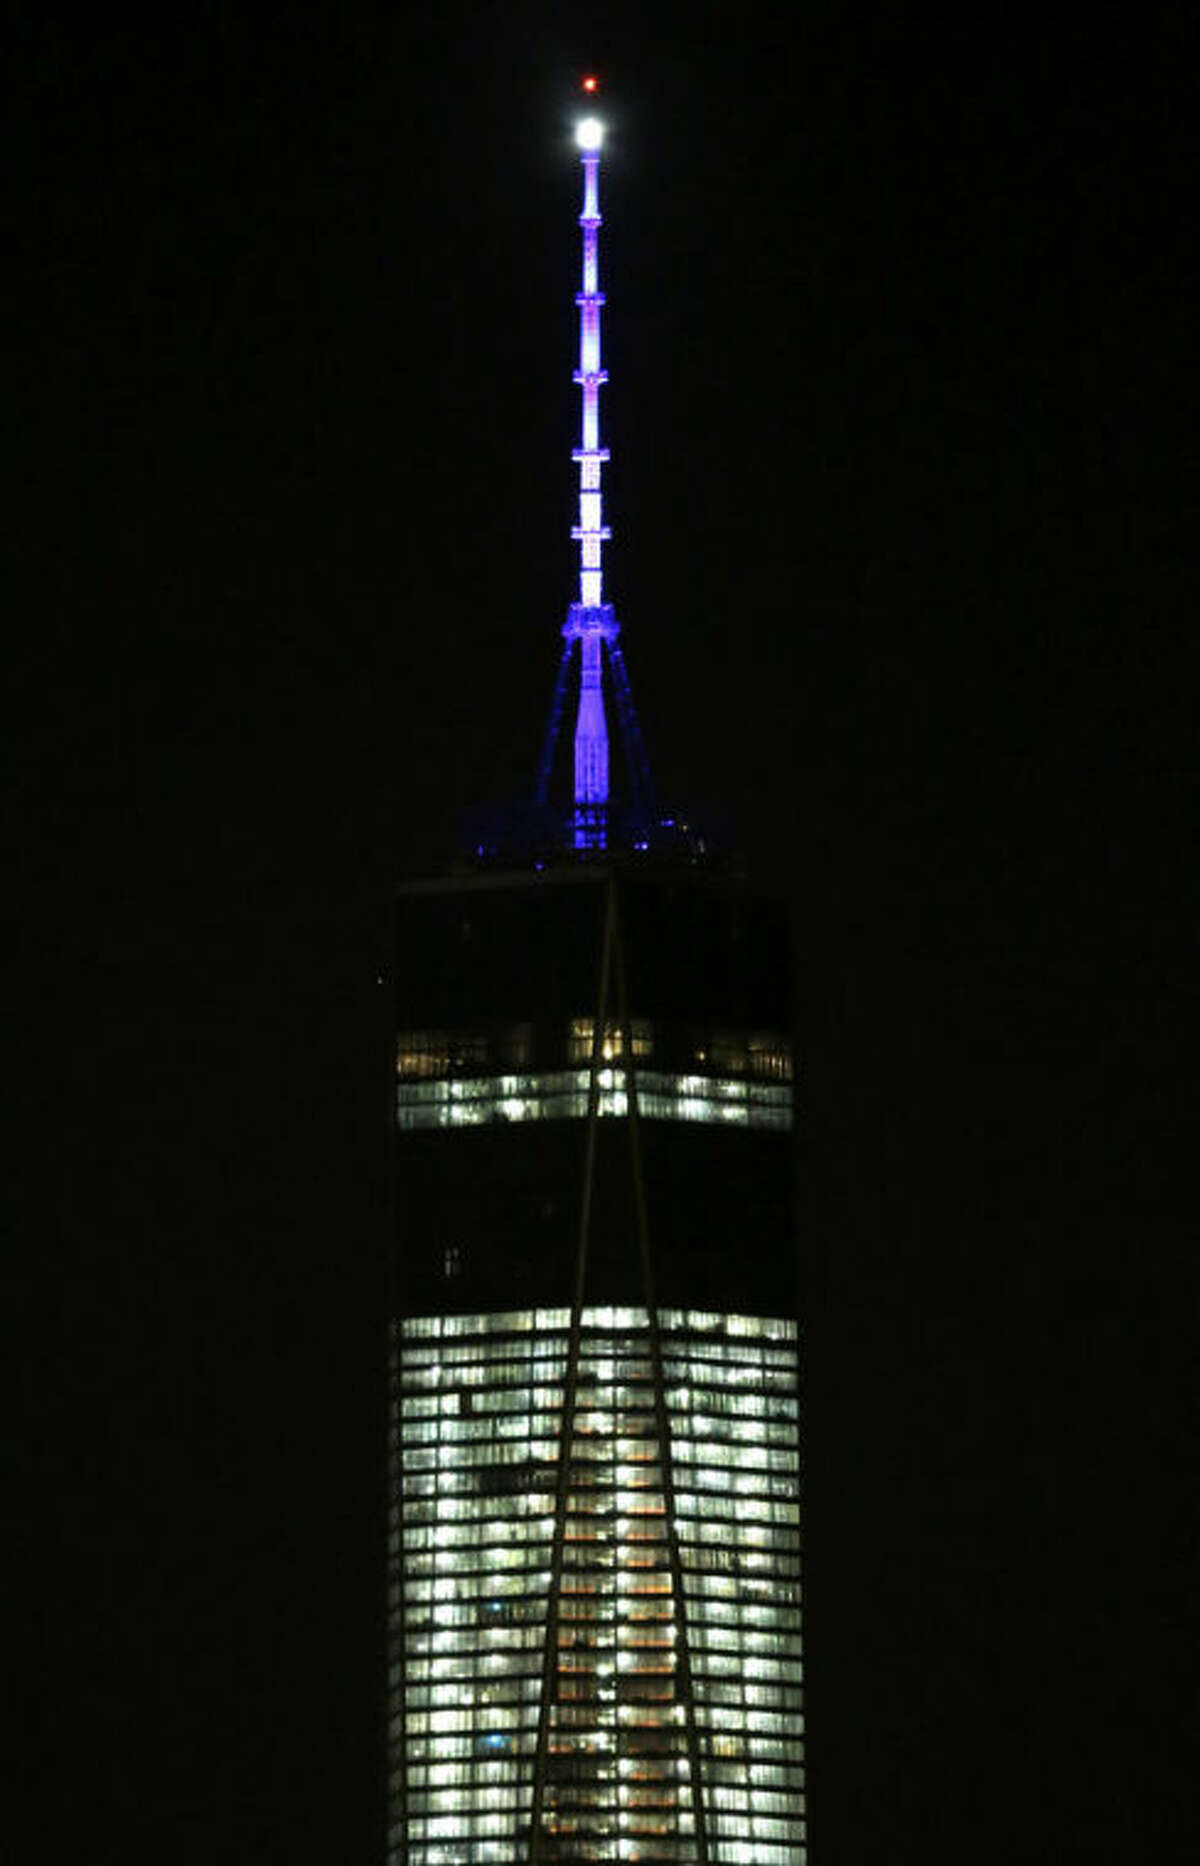 FILE - In this Nov. 8, 2013 file photo, the beacon and spire of 1 World Trade Center are lit up, as seen from The Heights neighborhood of Jersey City, N.J. The new World Trade Center tower in New York knocked Chicago's Willis Tower off its pedestal as the nation's tallest building when an international panel of architects announced Tuesday, Nov. 12, 2013 that the needle atop the skyscraper can be counted when measuring the structure's height. (AP Photo/Julio Cortez, File)